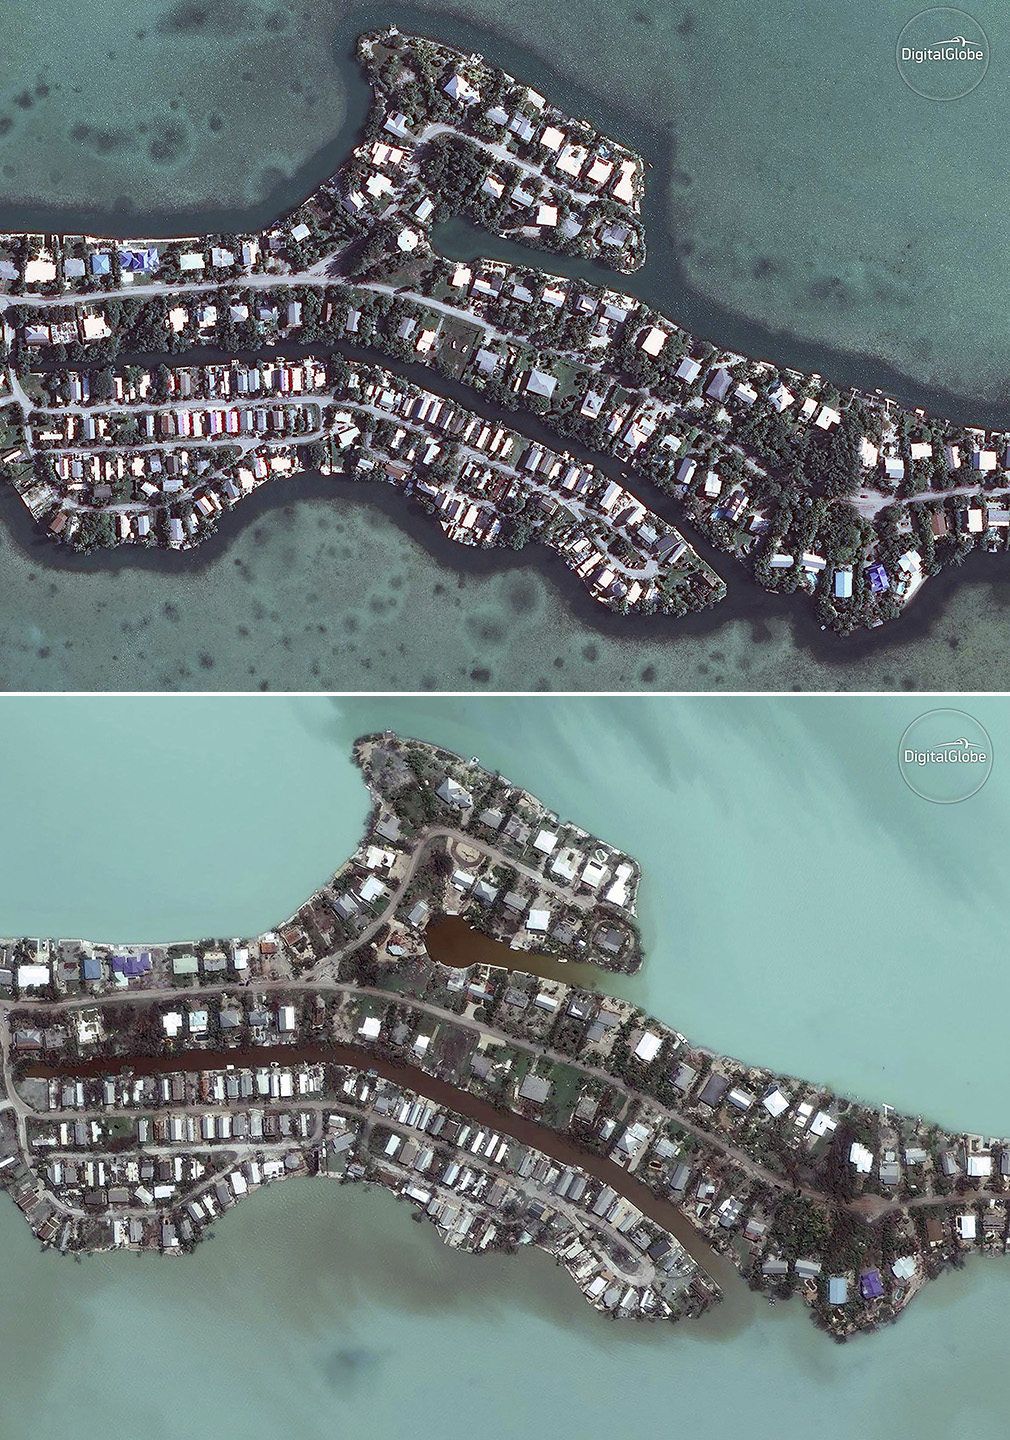 Satellite images provided by DigitalGlobe shows homes in Key West before and after Irma swept through. (AAP)